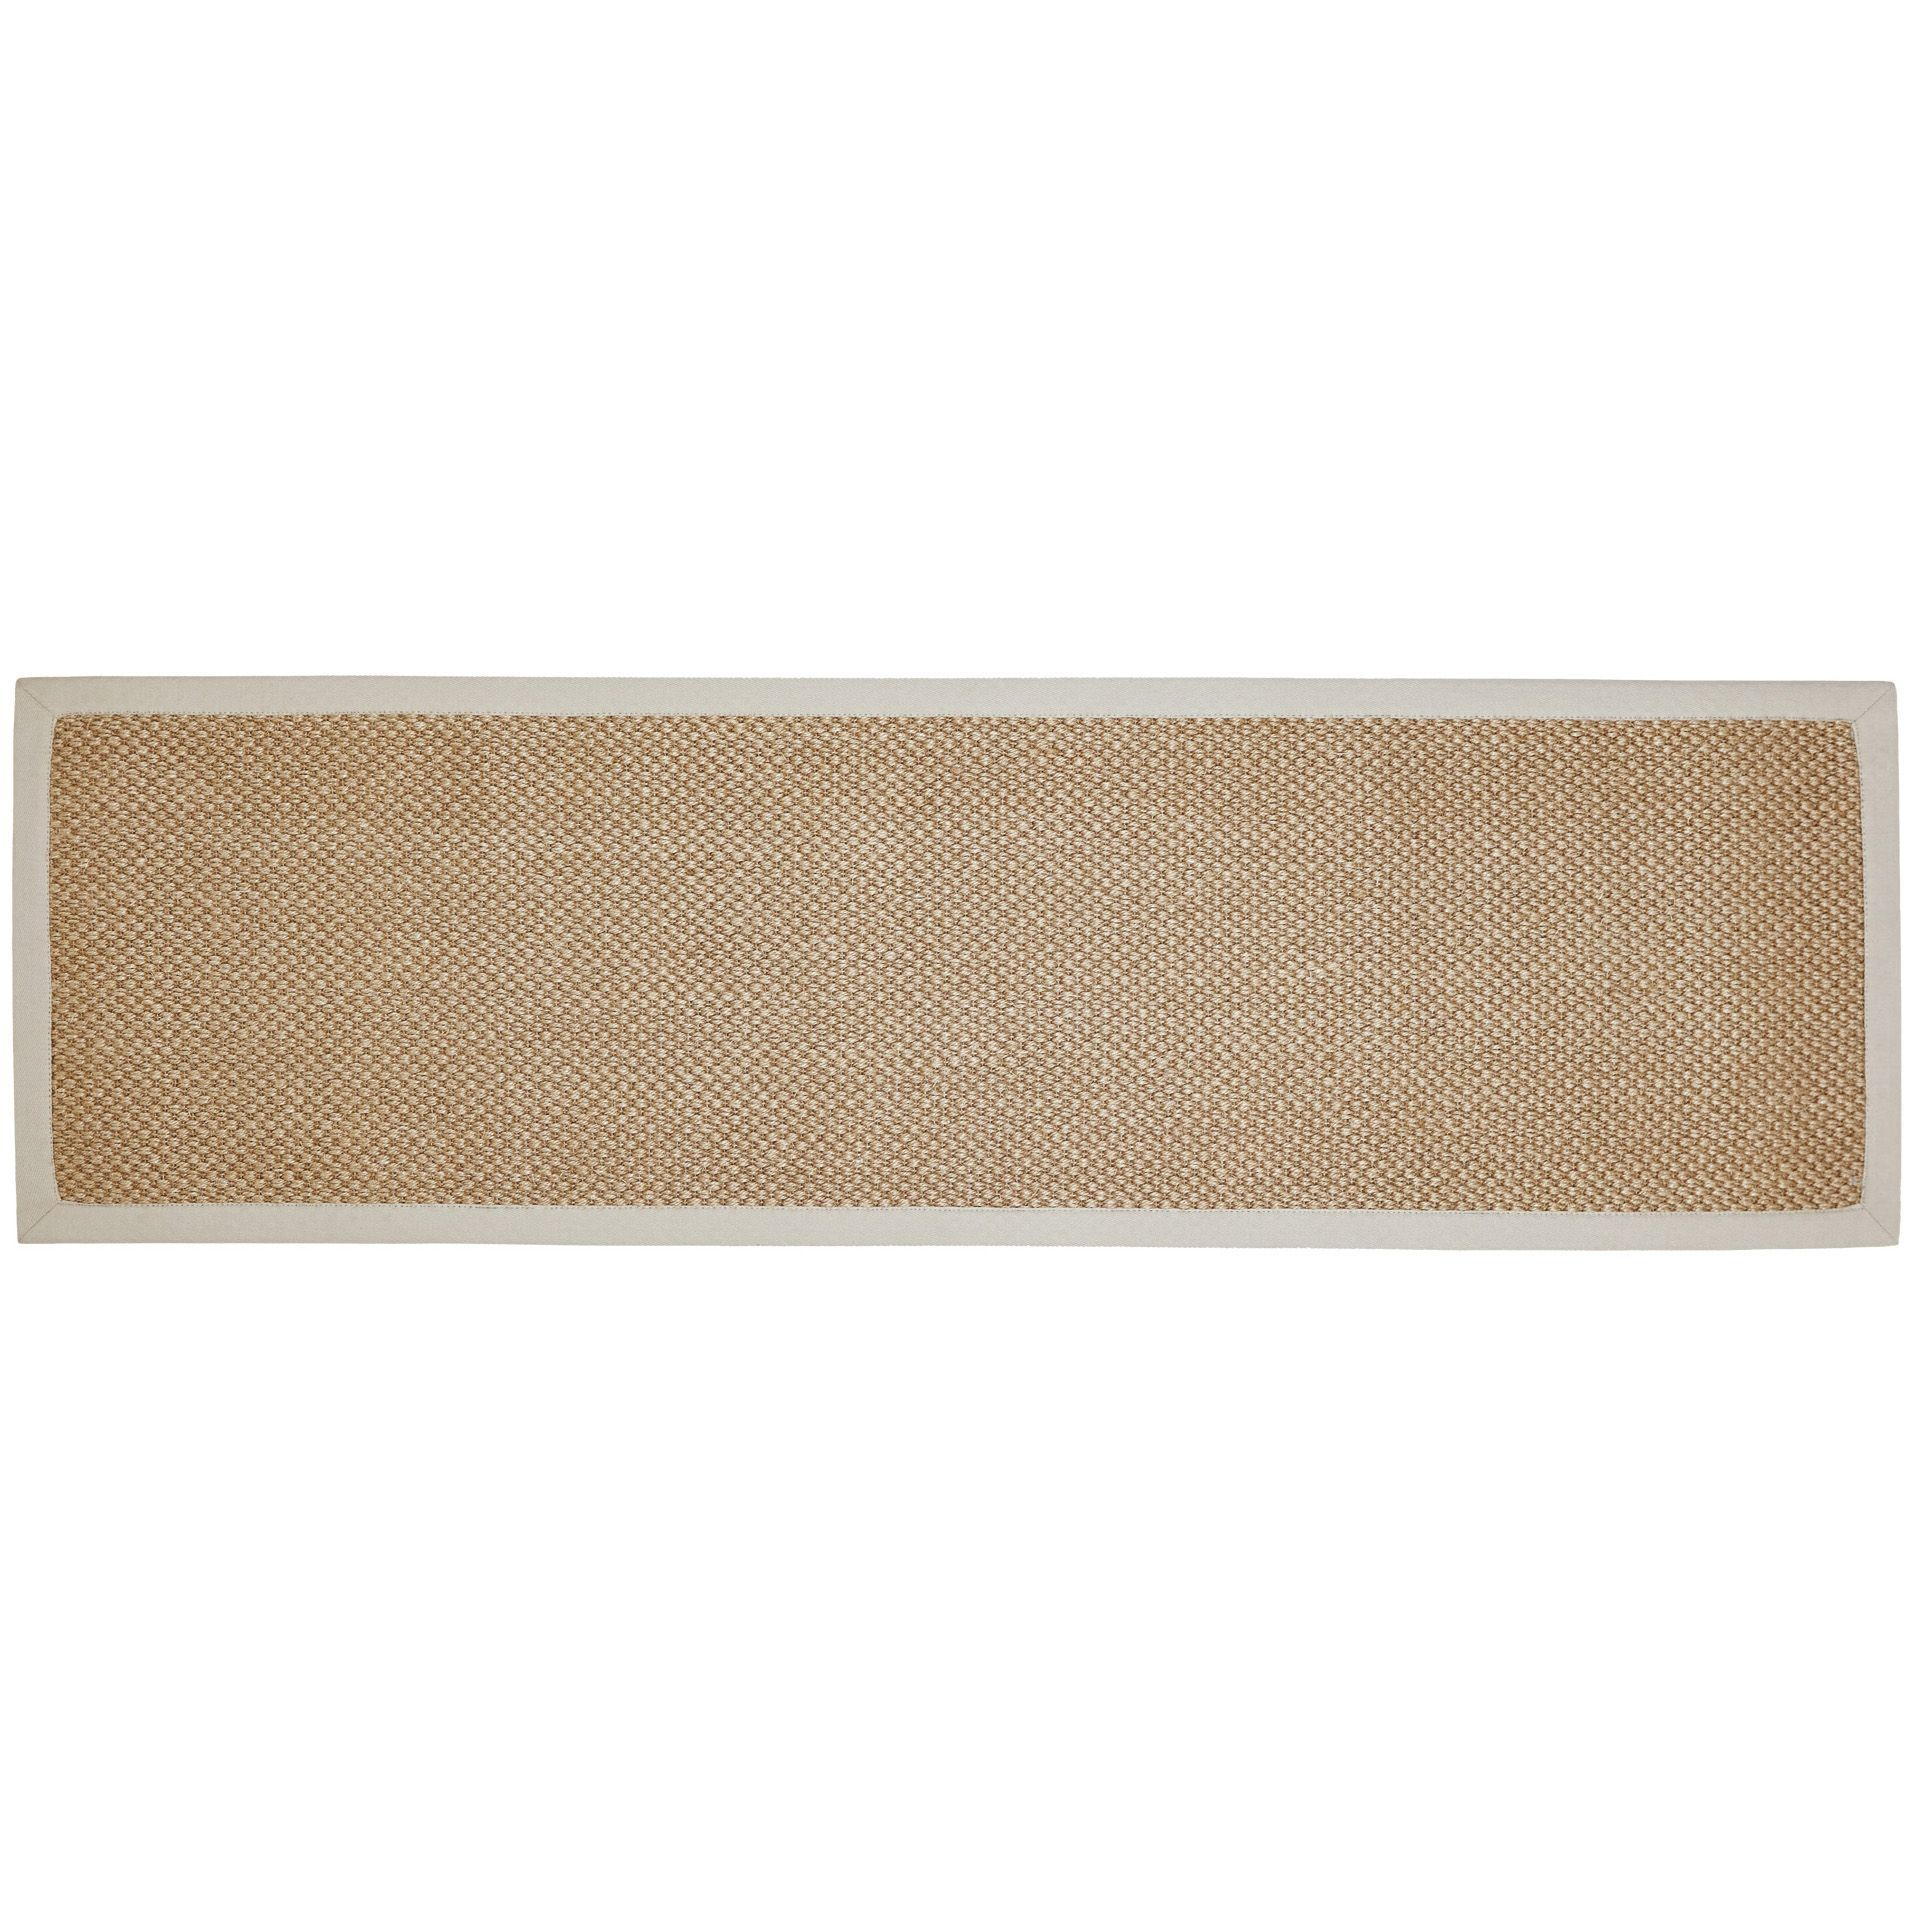 Colours Fabianna Natural Flatweave With Cotton Border Runner (l)2m (w)0.6 M